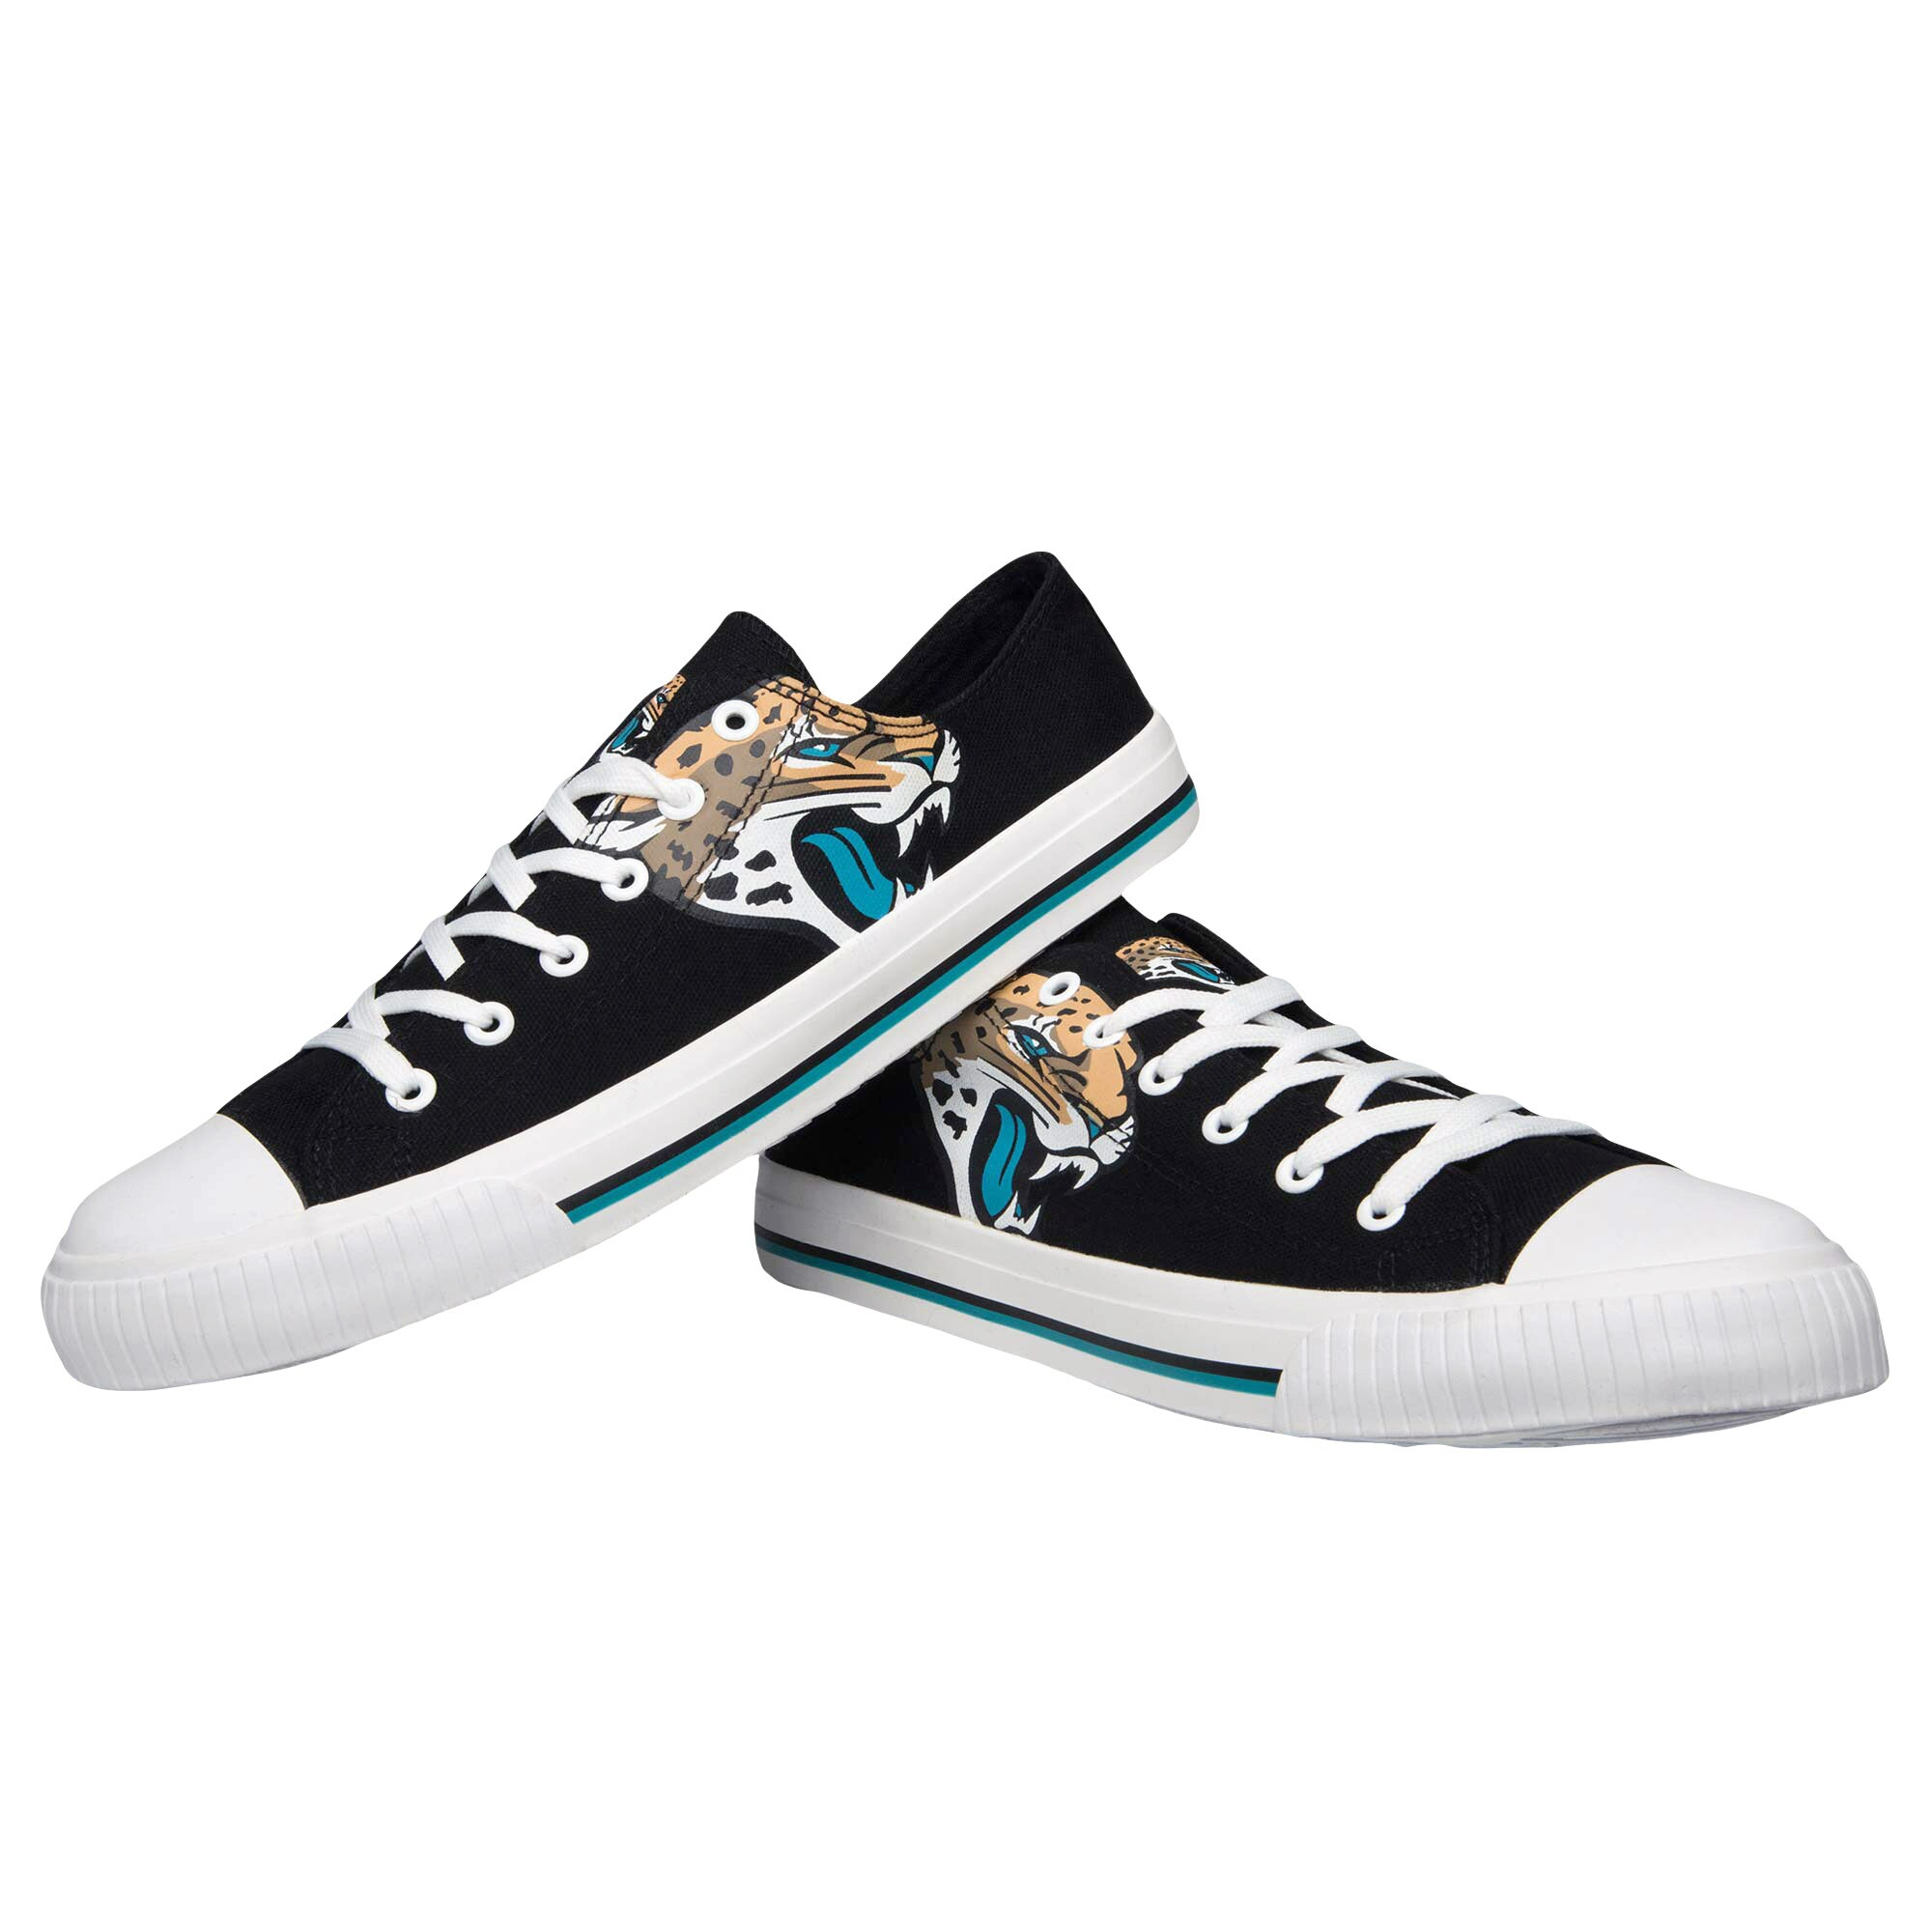 Jacksonville Jaguars Big Logo Low Top Sneakers